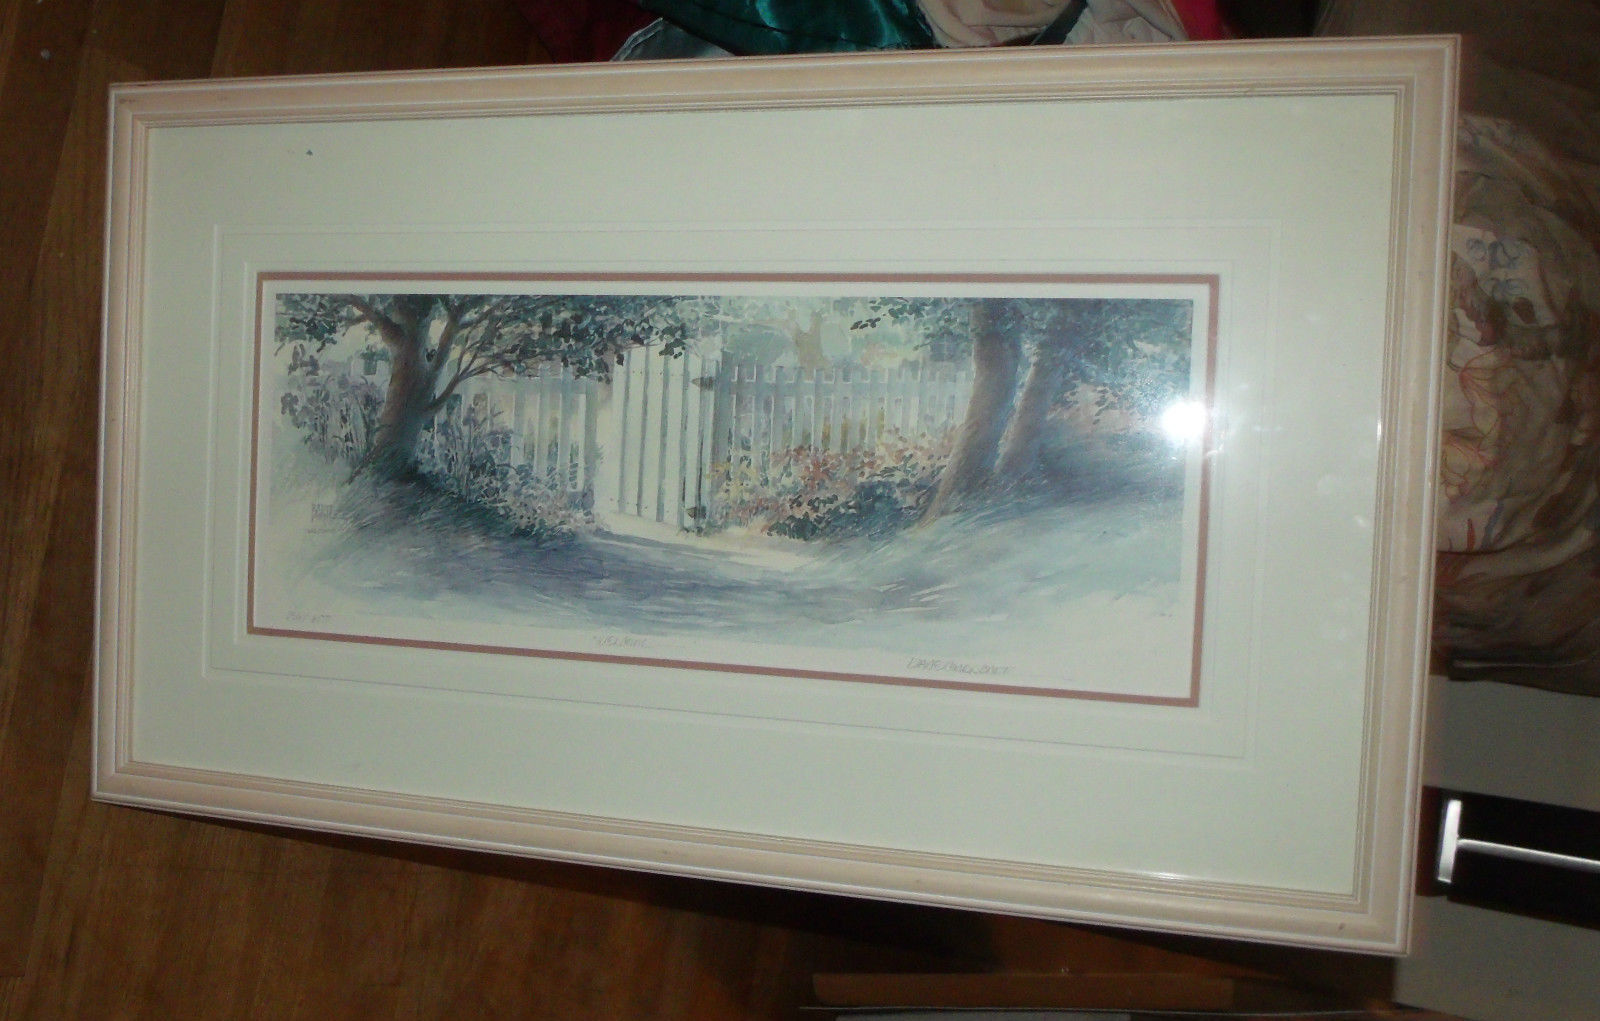 WELCOME 20X34 FRAMED LIMITED EDITION SIGNED BY DIANE CLAPP BARTZ W/ COA